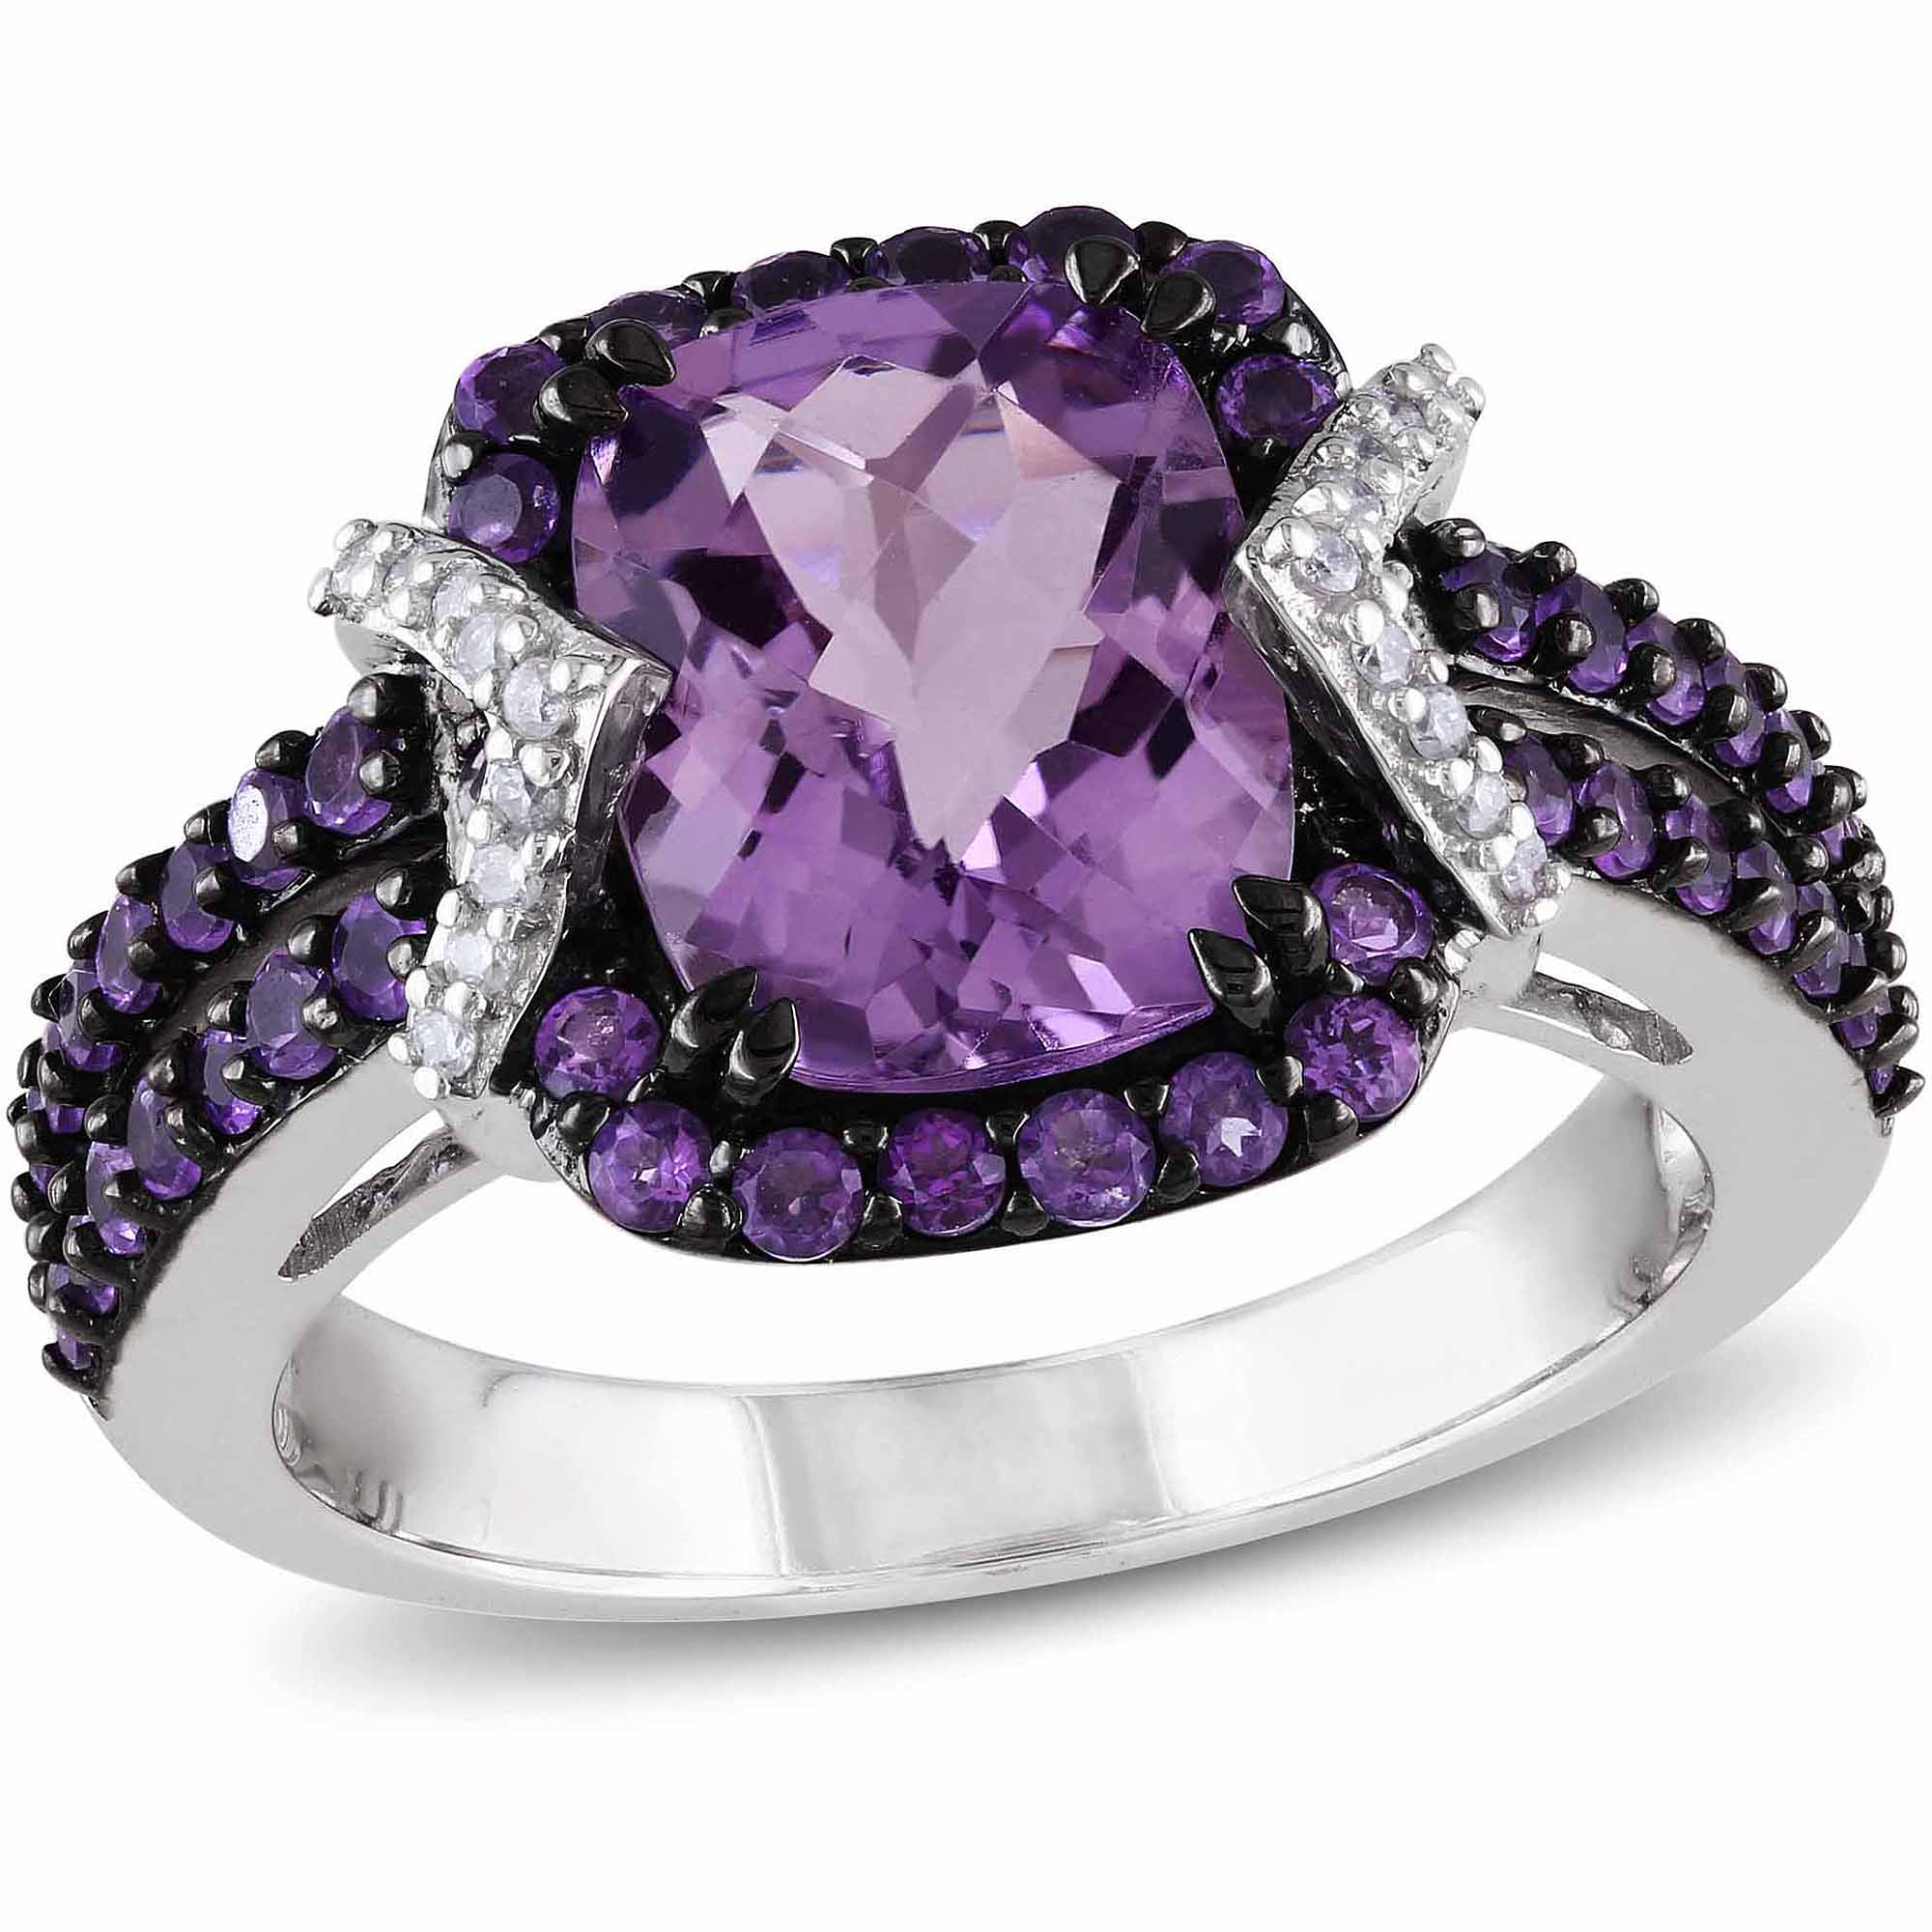 3-1 3 Carat T.G.W. Amethyst and Amethyst-Africa with 1 6 Carat T.W. Diamond Sterling Silver Halo Cocktail Ring by Generic